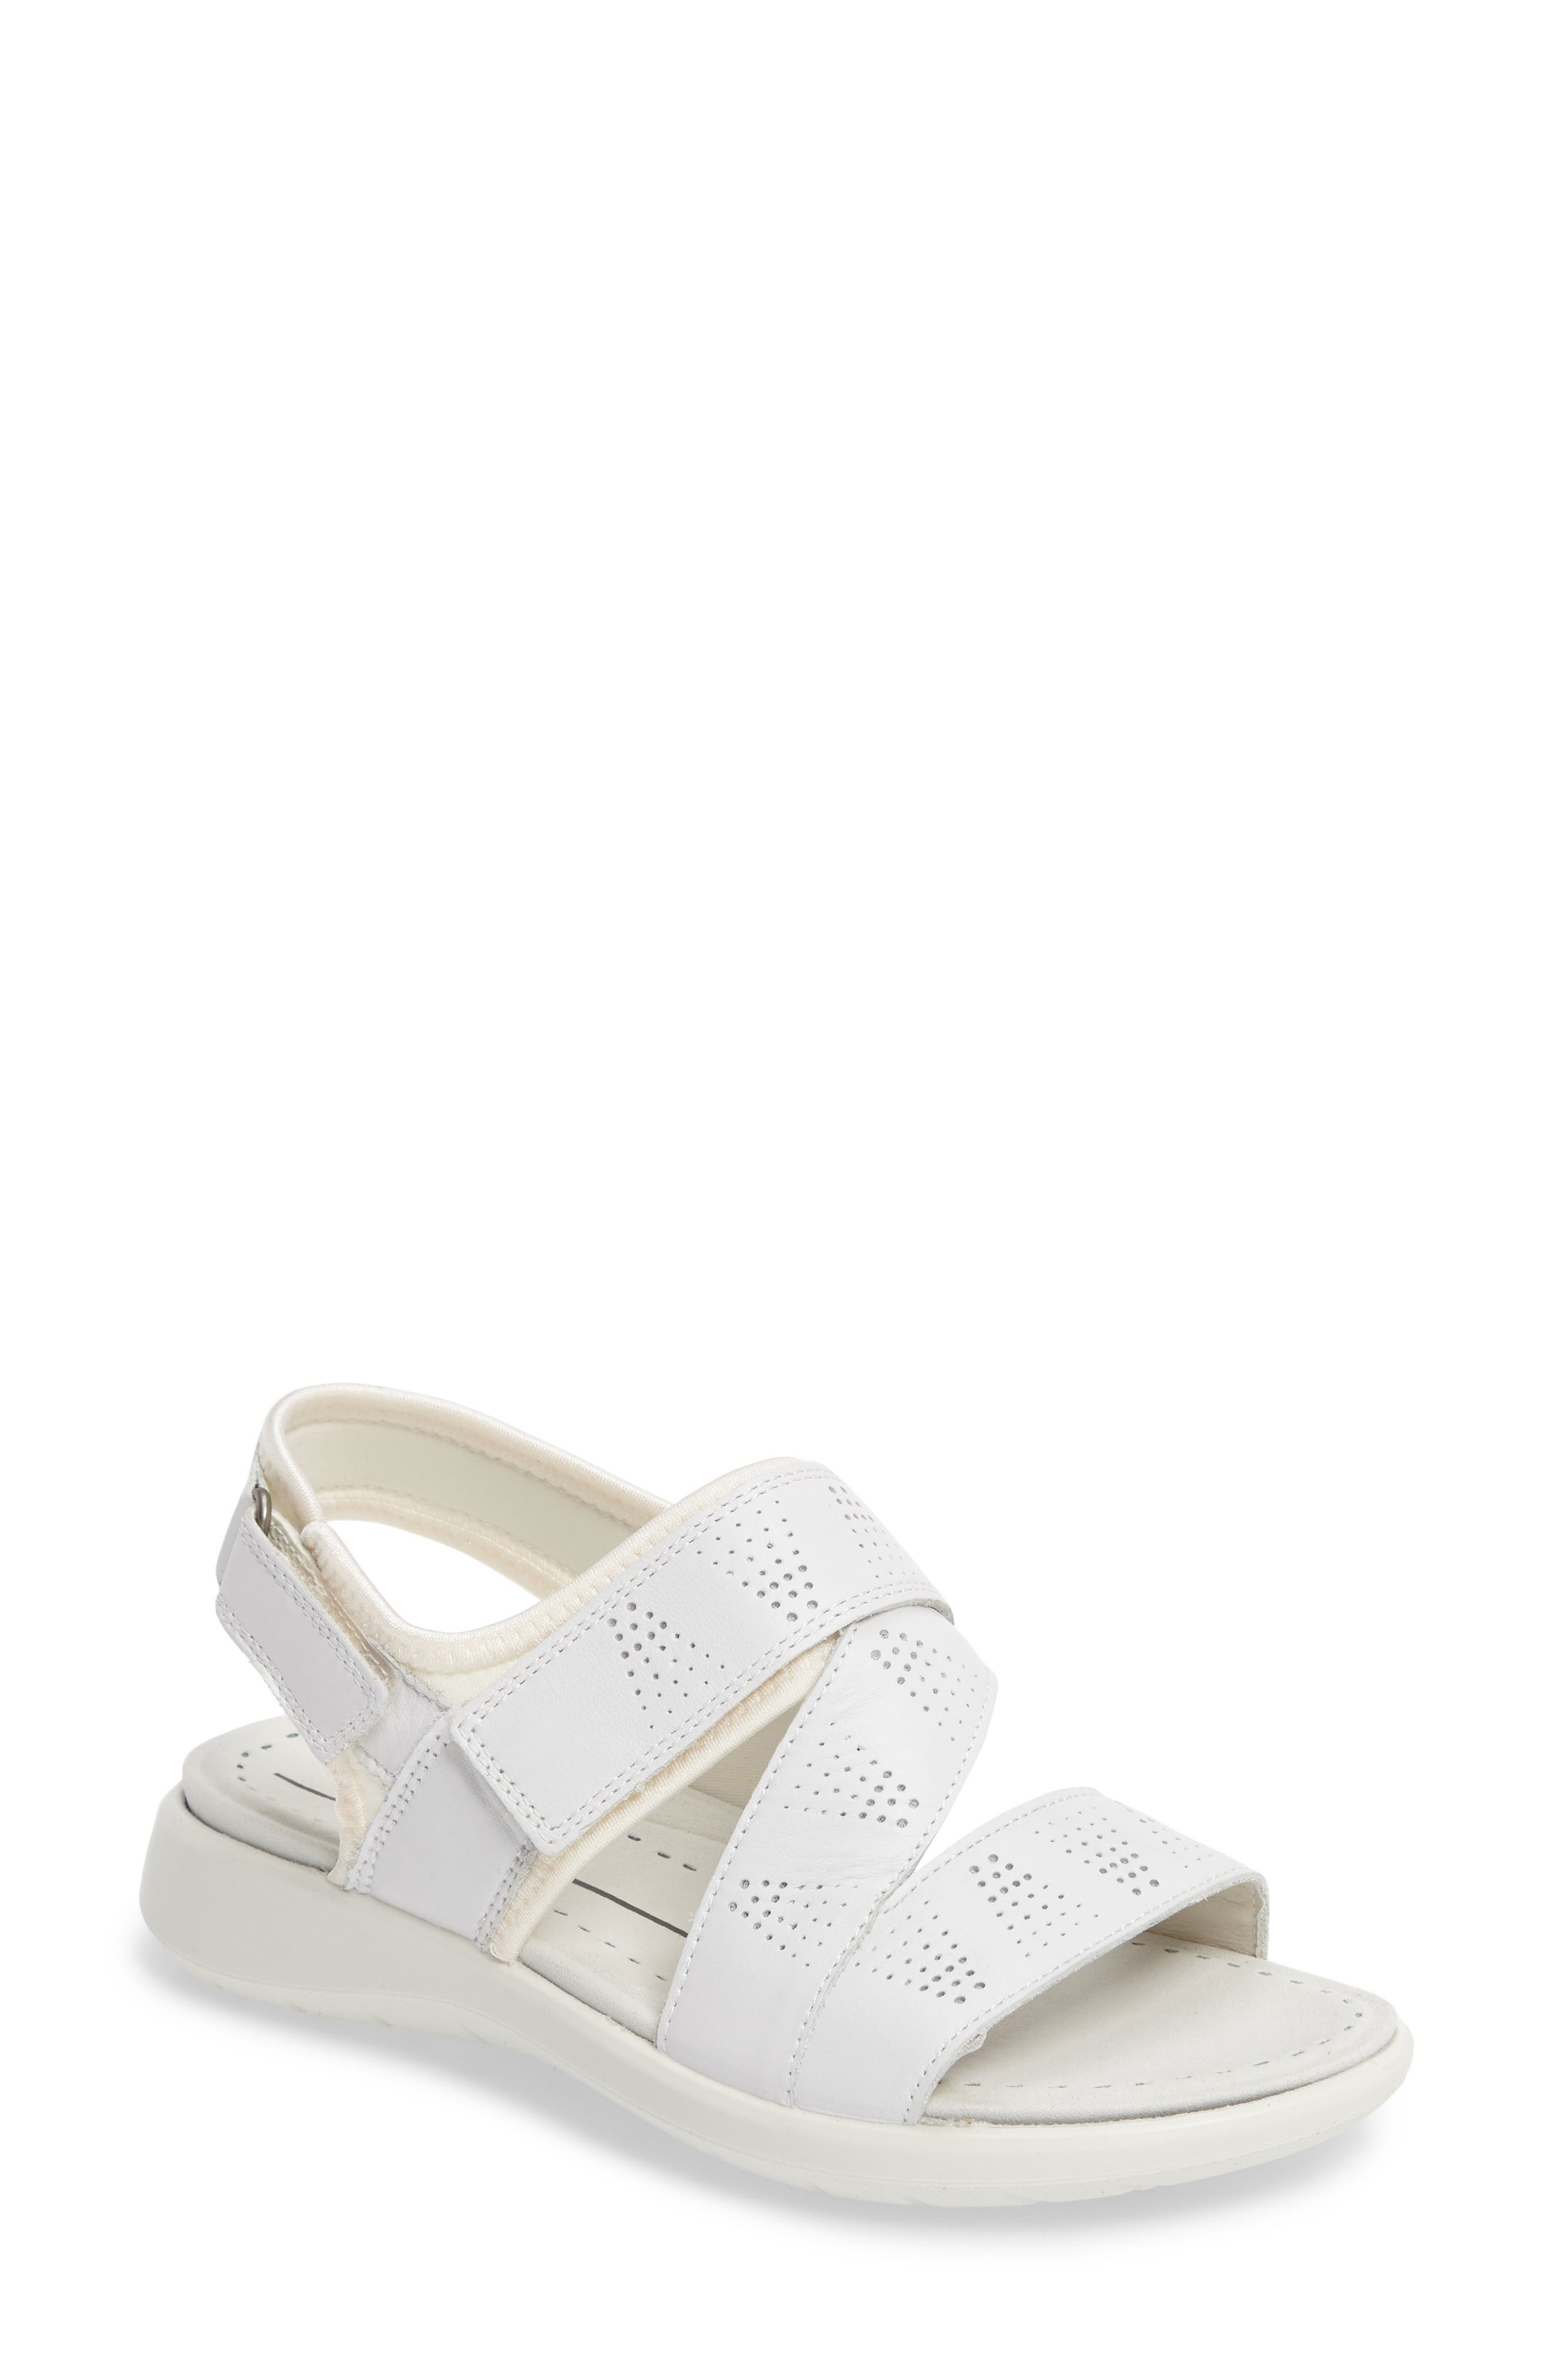 Soft 5 Sandal,                         Main,                         color, White Leather